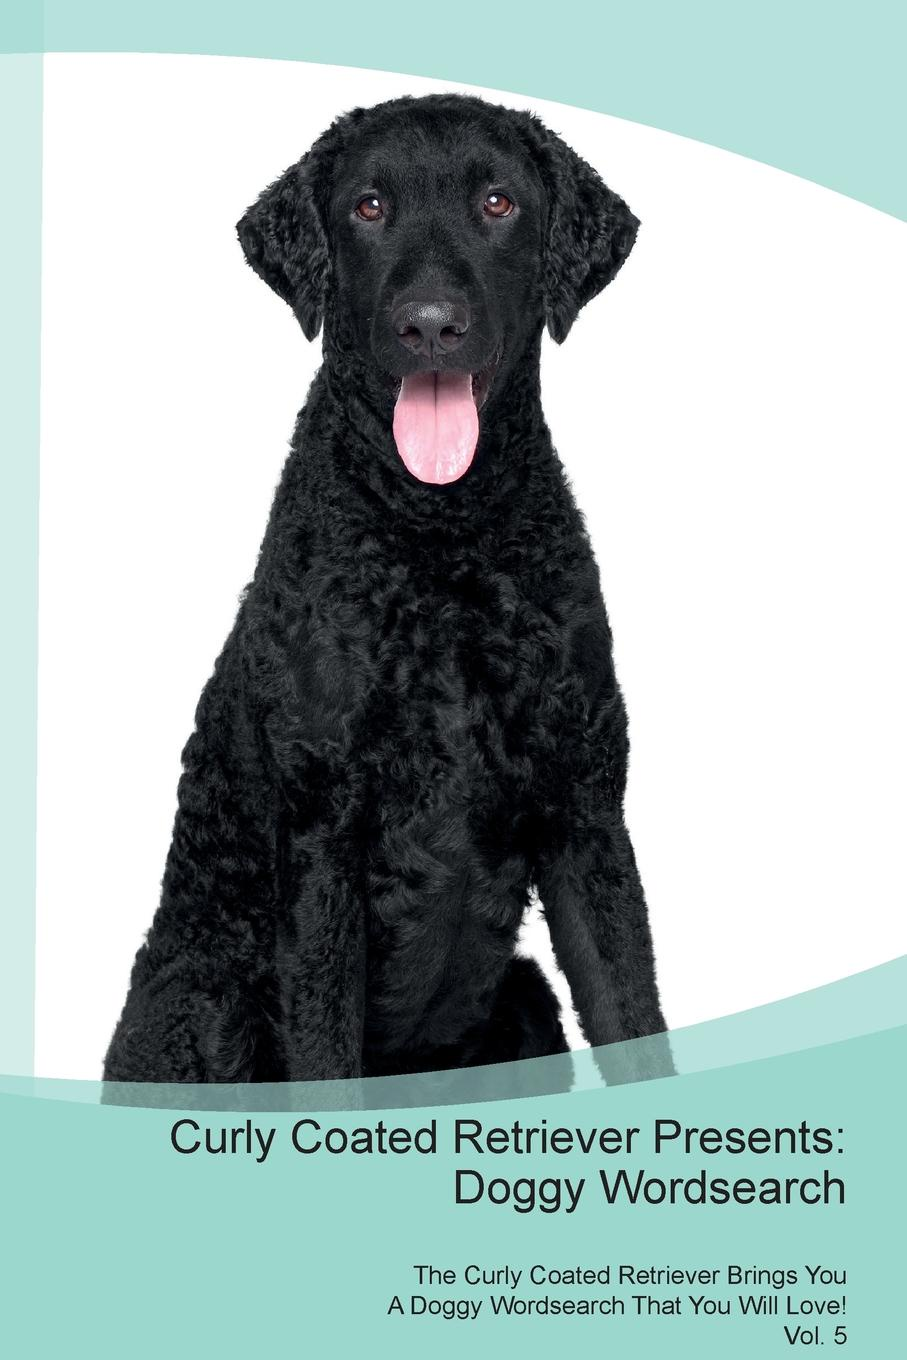 Doggy Puzzles Curly Coated Retriever Presents. Wordsearch The Brings You A That Will Love! Vol. 5